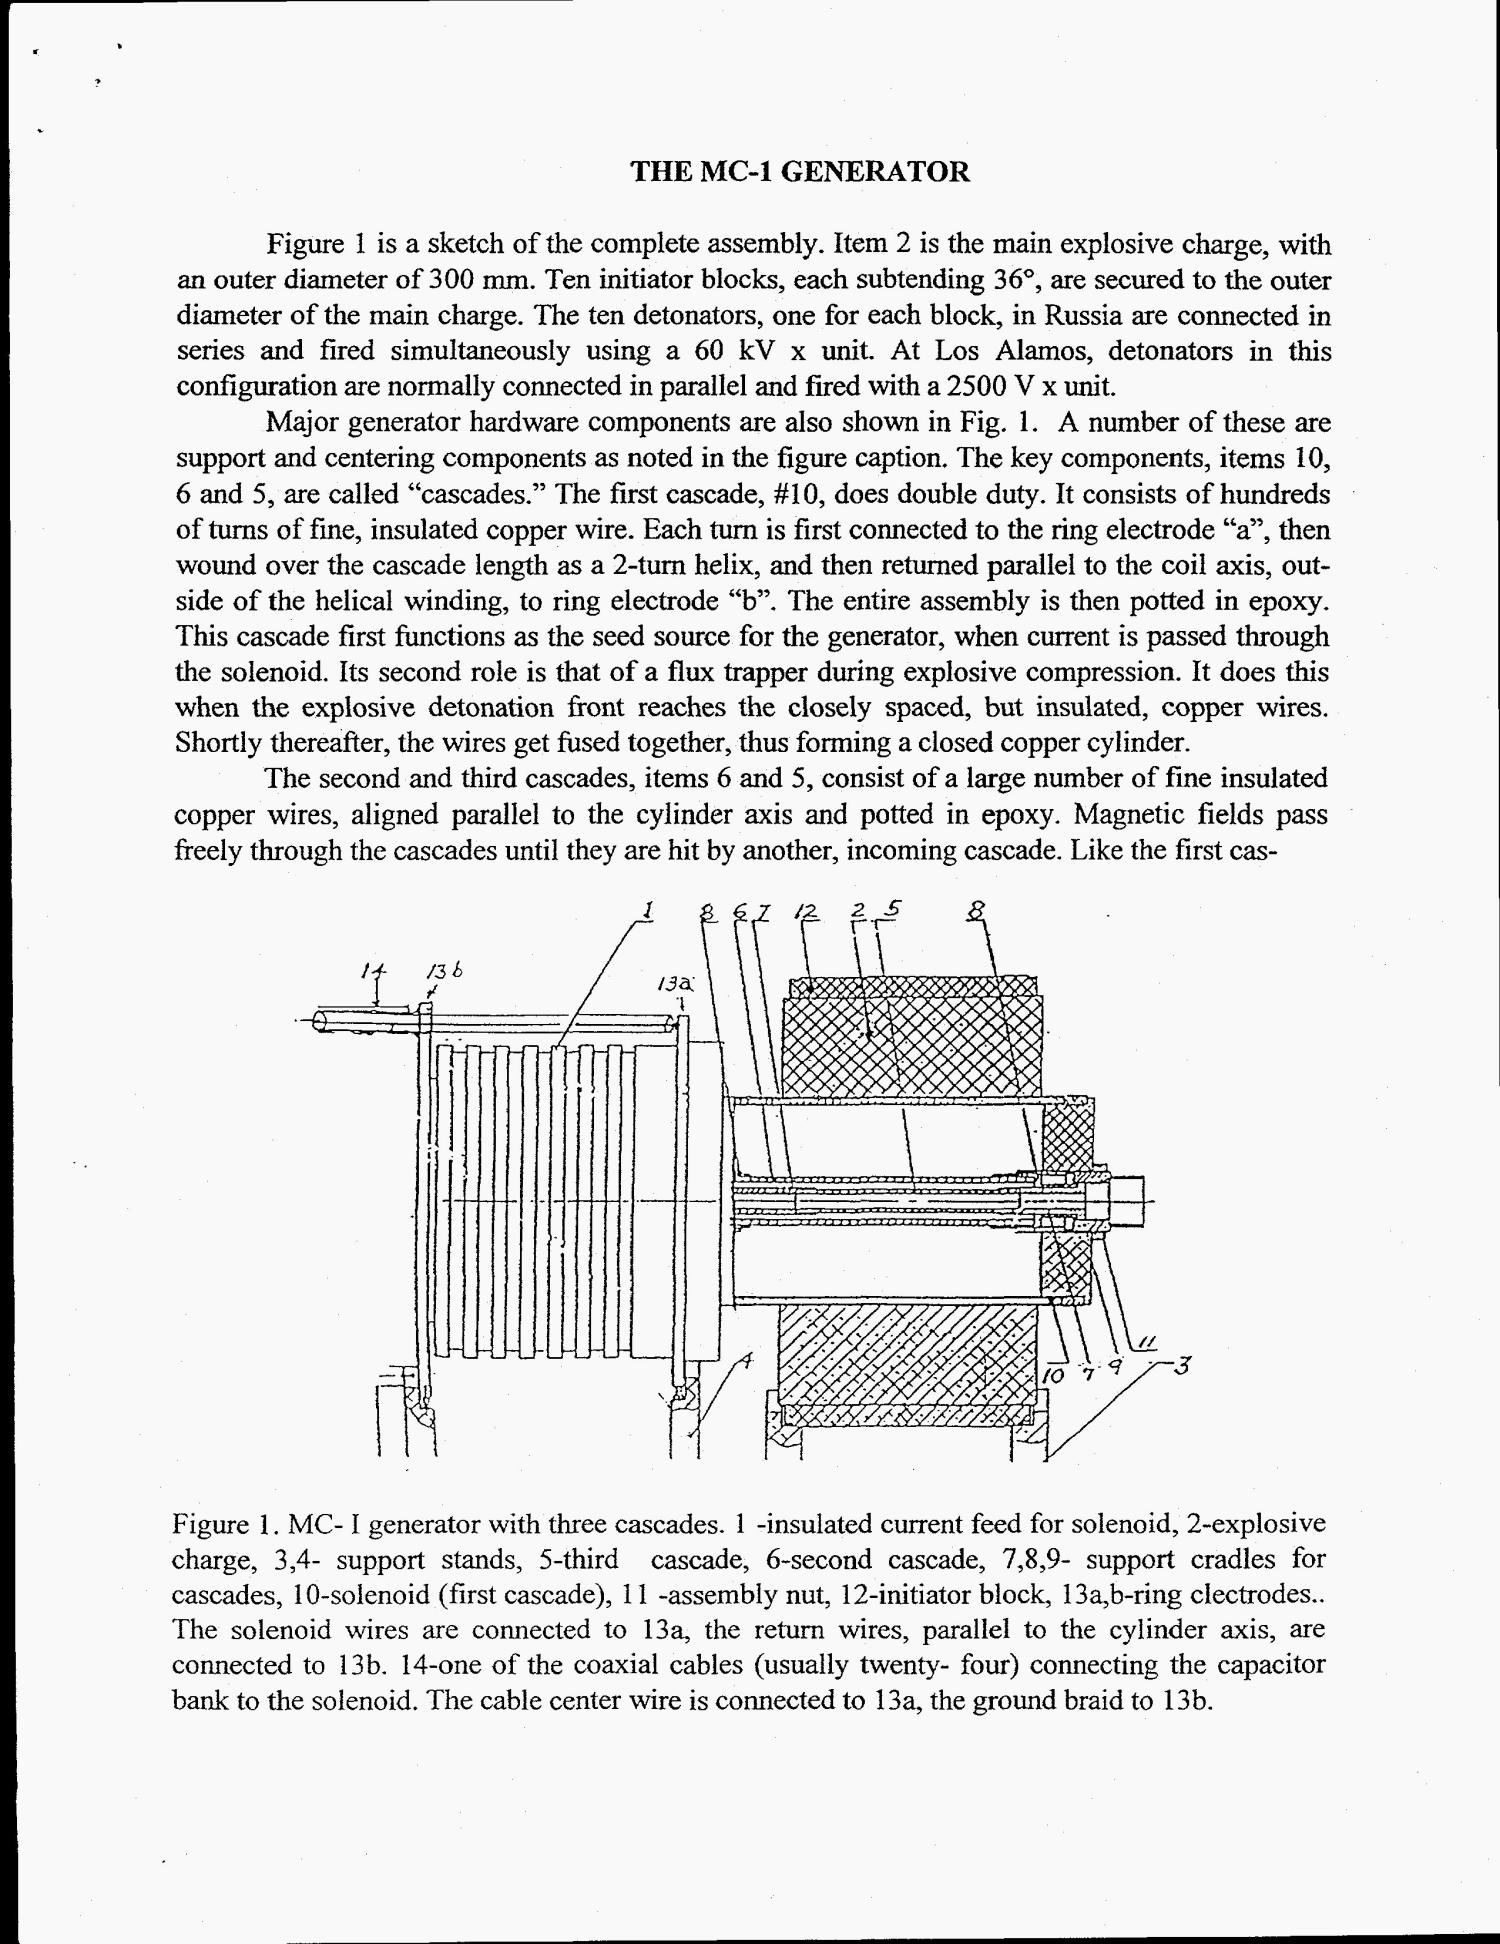 The Russian-American high magnetic field collaboration                                                                                                      [Sequence #]: 4 of 8